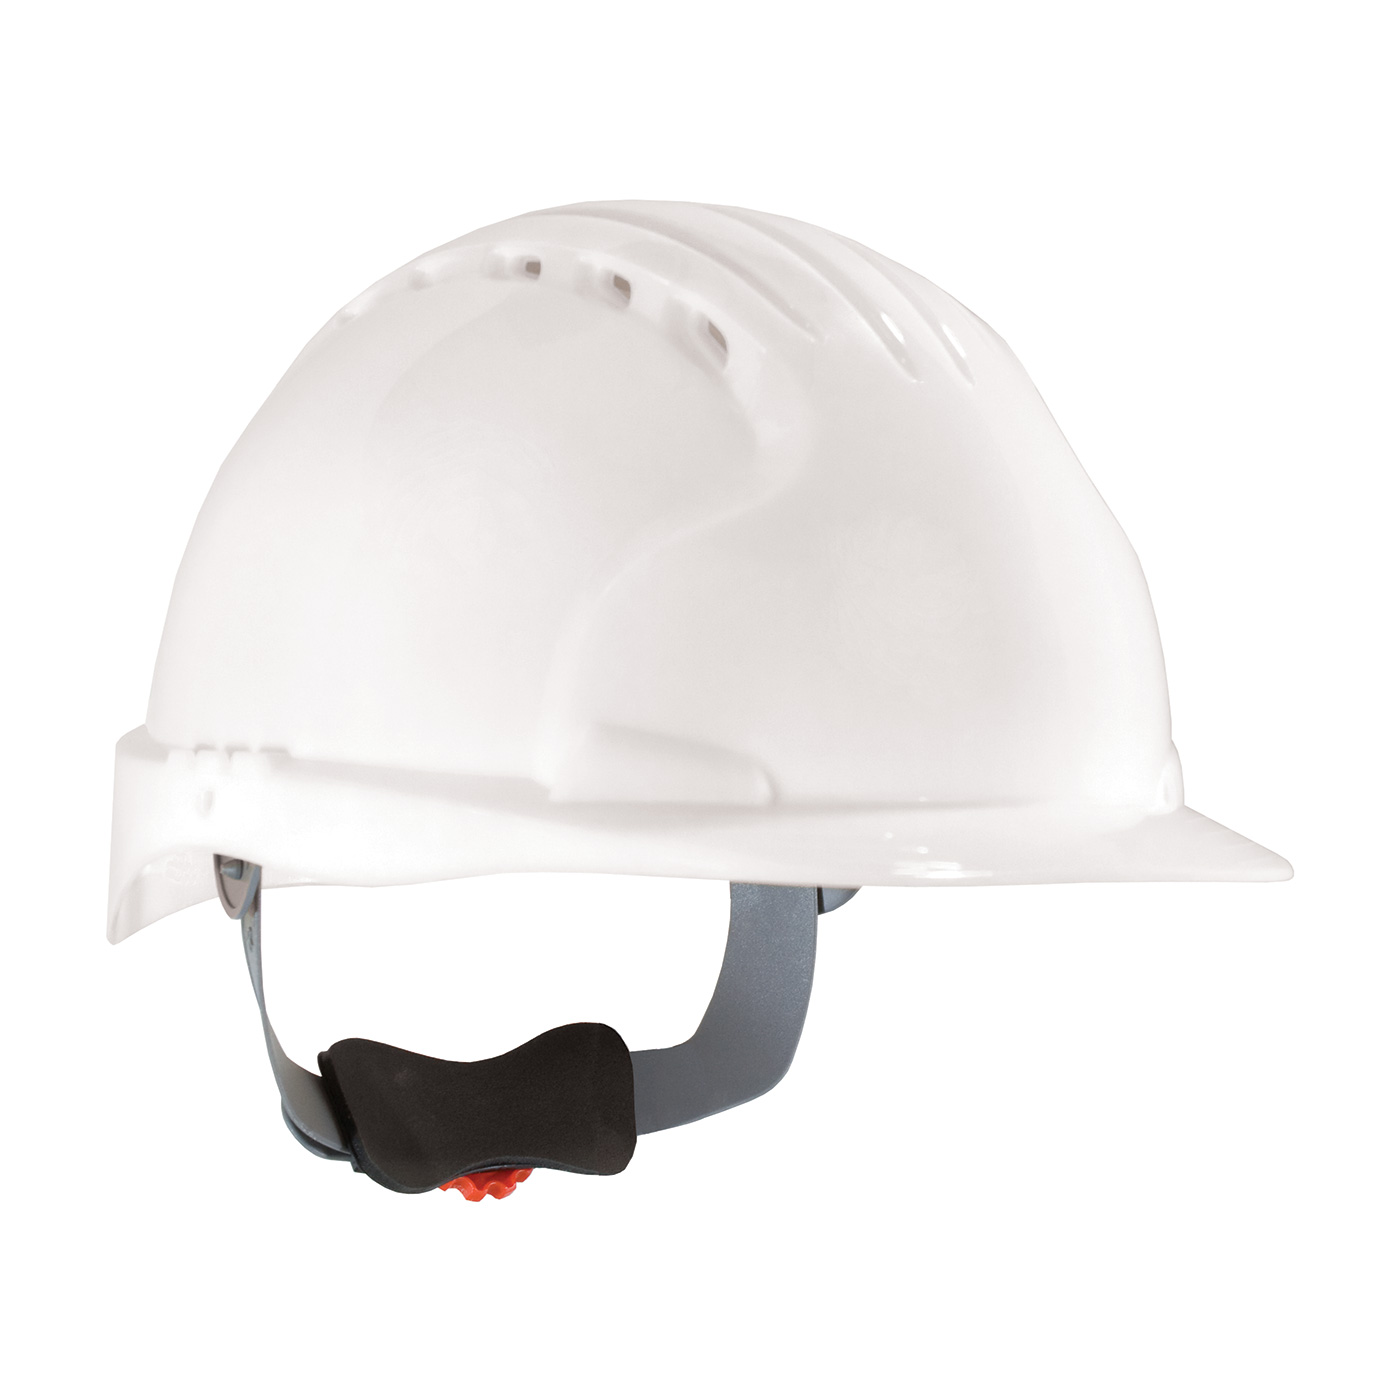 280-EV6151V PIP® JSP® Evolution® Deluxe 6151 Standard Brim, Vented Hard Hat with HDPE Shell, 6-Point Polyester Suspension and Wheel Ratchet Adjustment - White